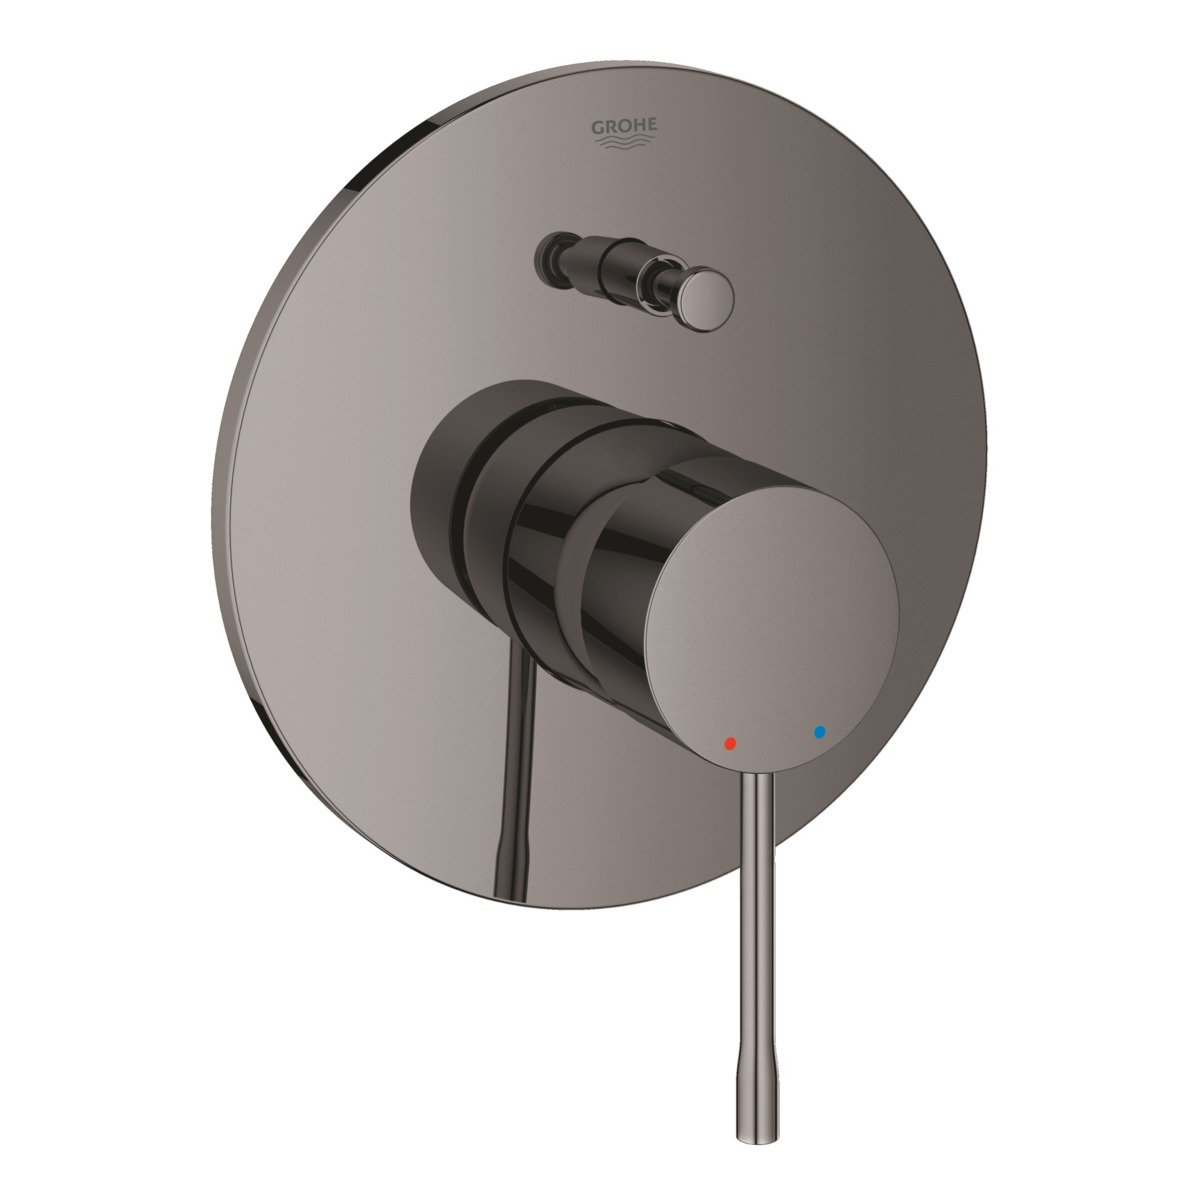 Grohe Essence New Set De Finition E Pour Mitigeur Encastré De